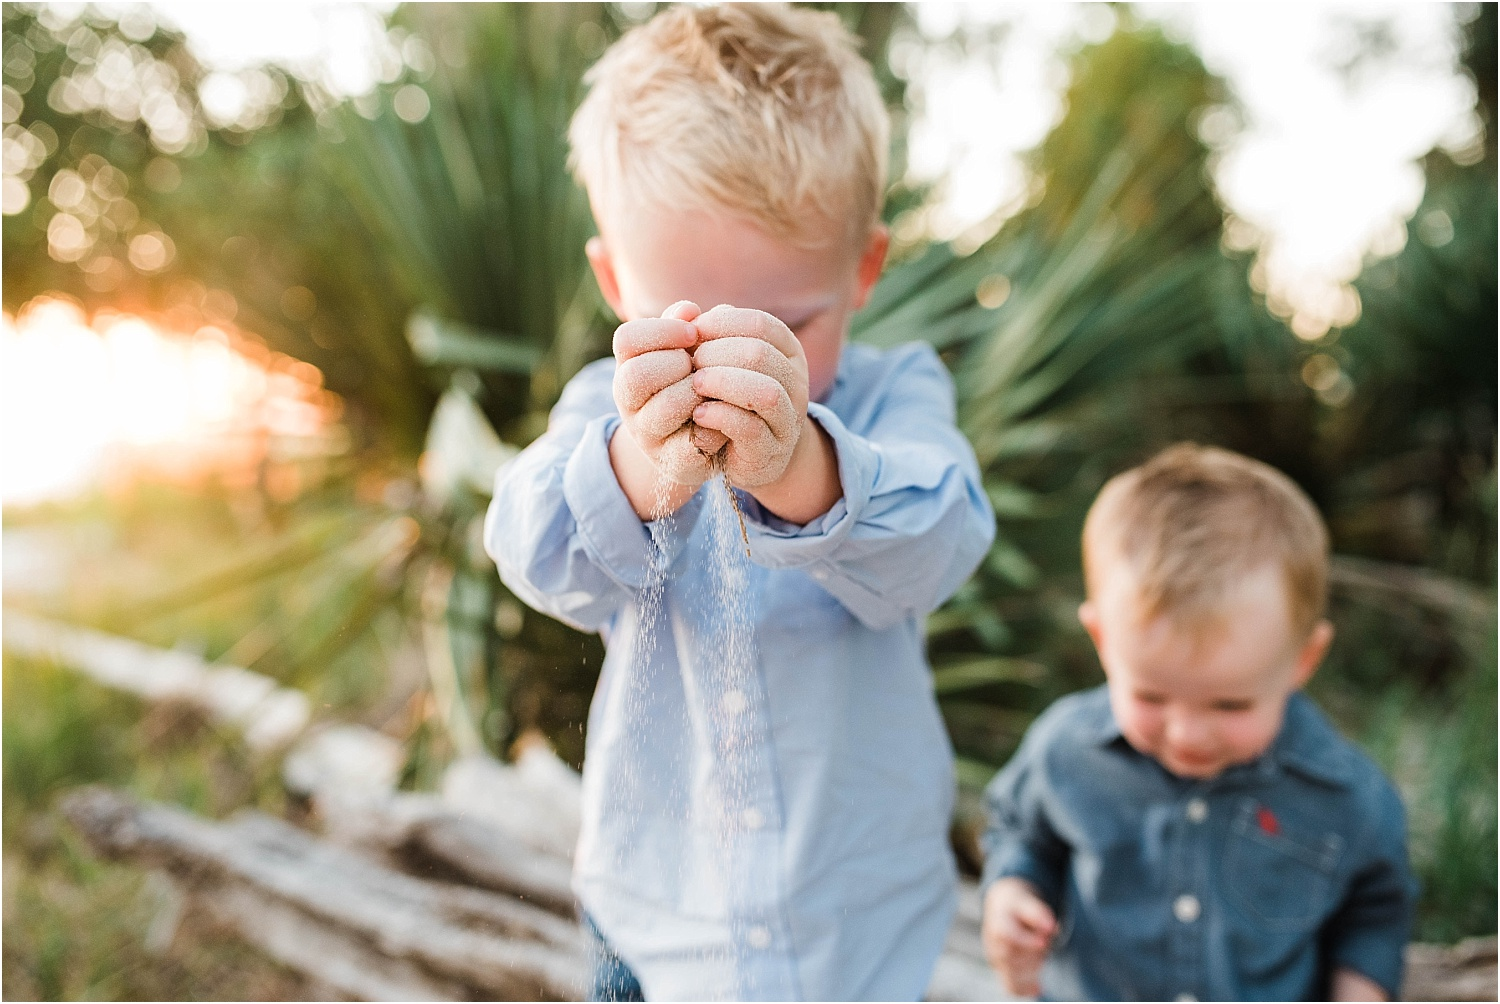 Smalley Family Fall 2019-Fountainbleau-State-Park-Family-Photos_Gabby Chapin Photography_0115_BLOG.jpg